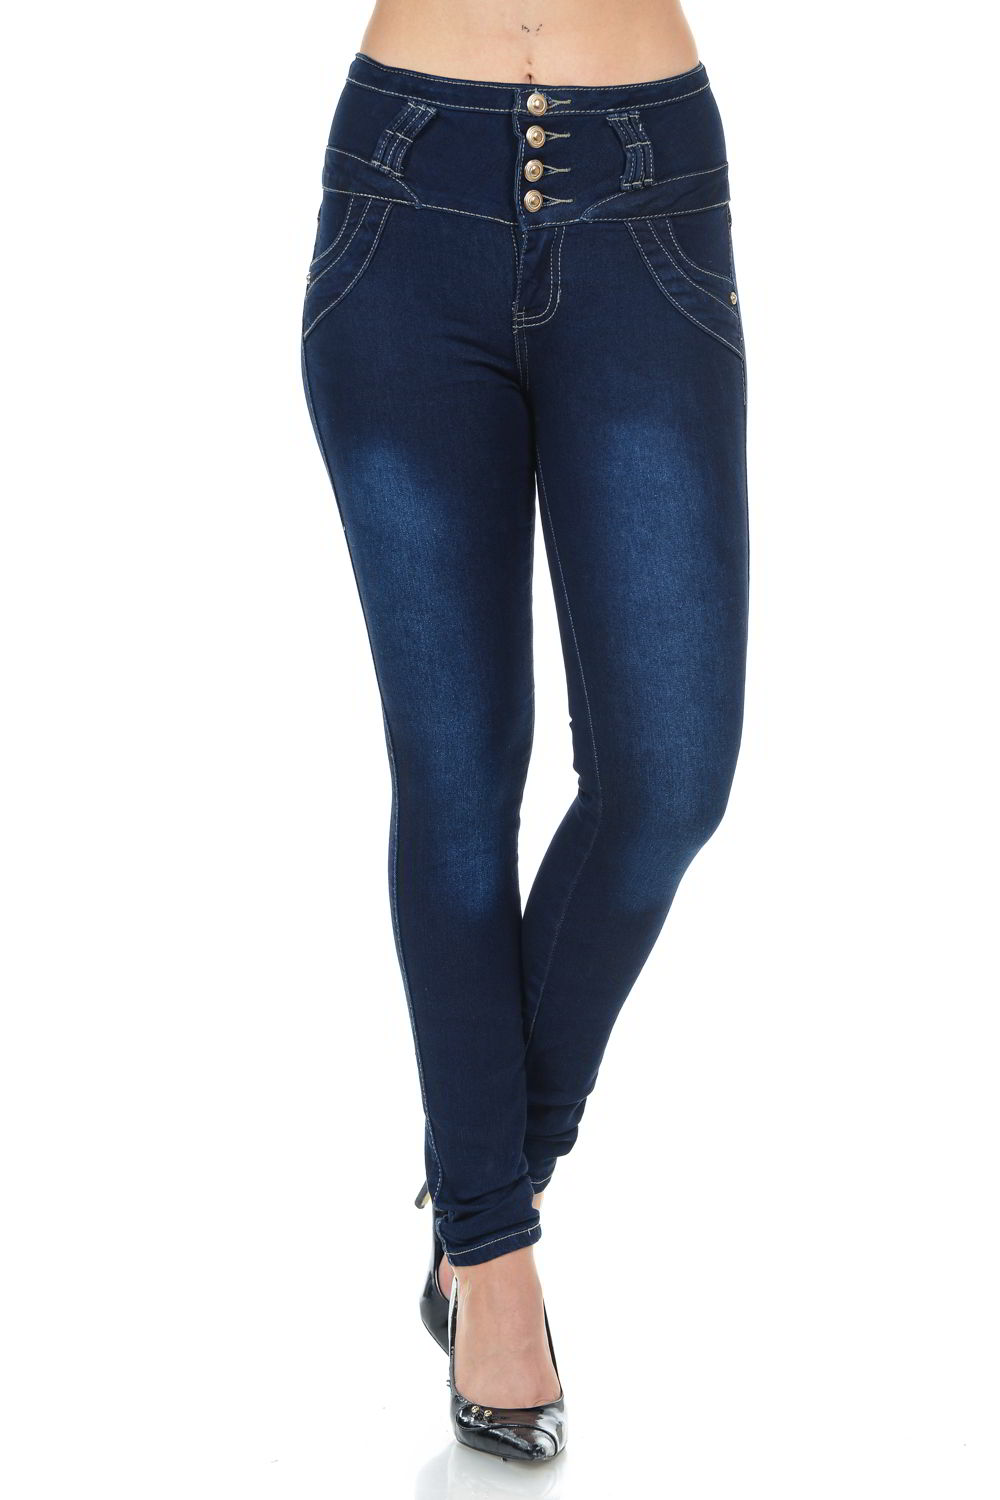 Levanta Cola Push-Up Jeans